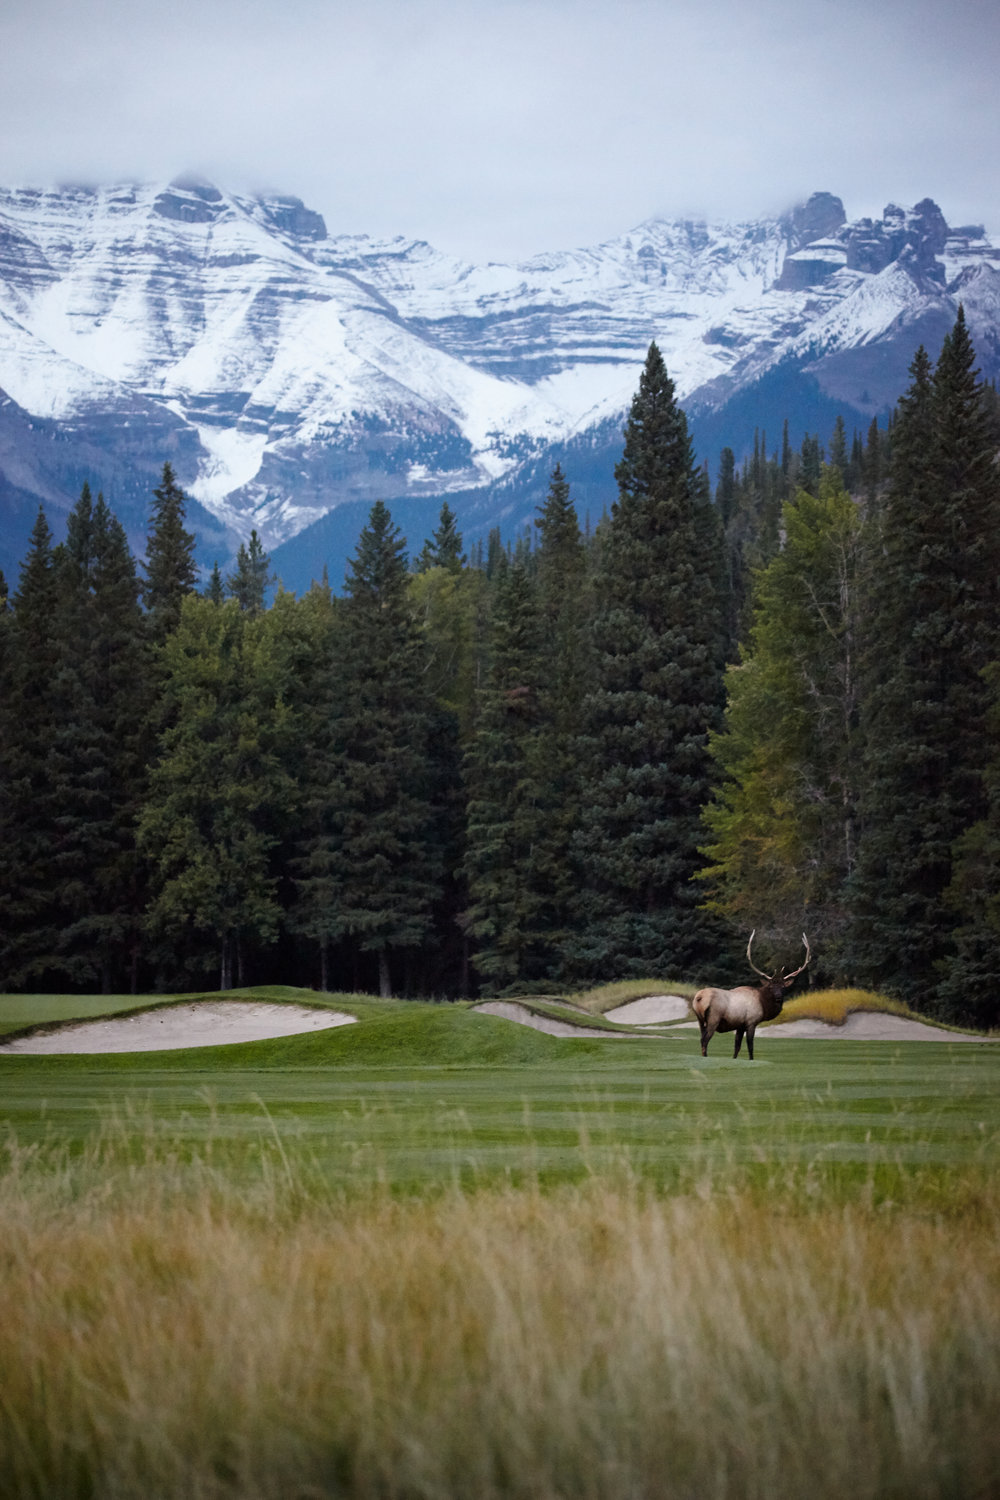 Bull Elk Grazing on the Golf Course, Banff National Park